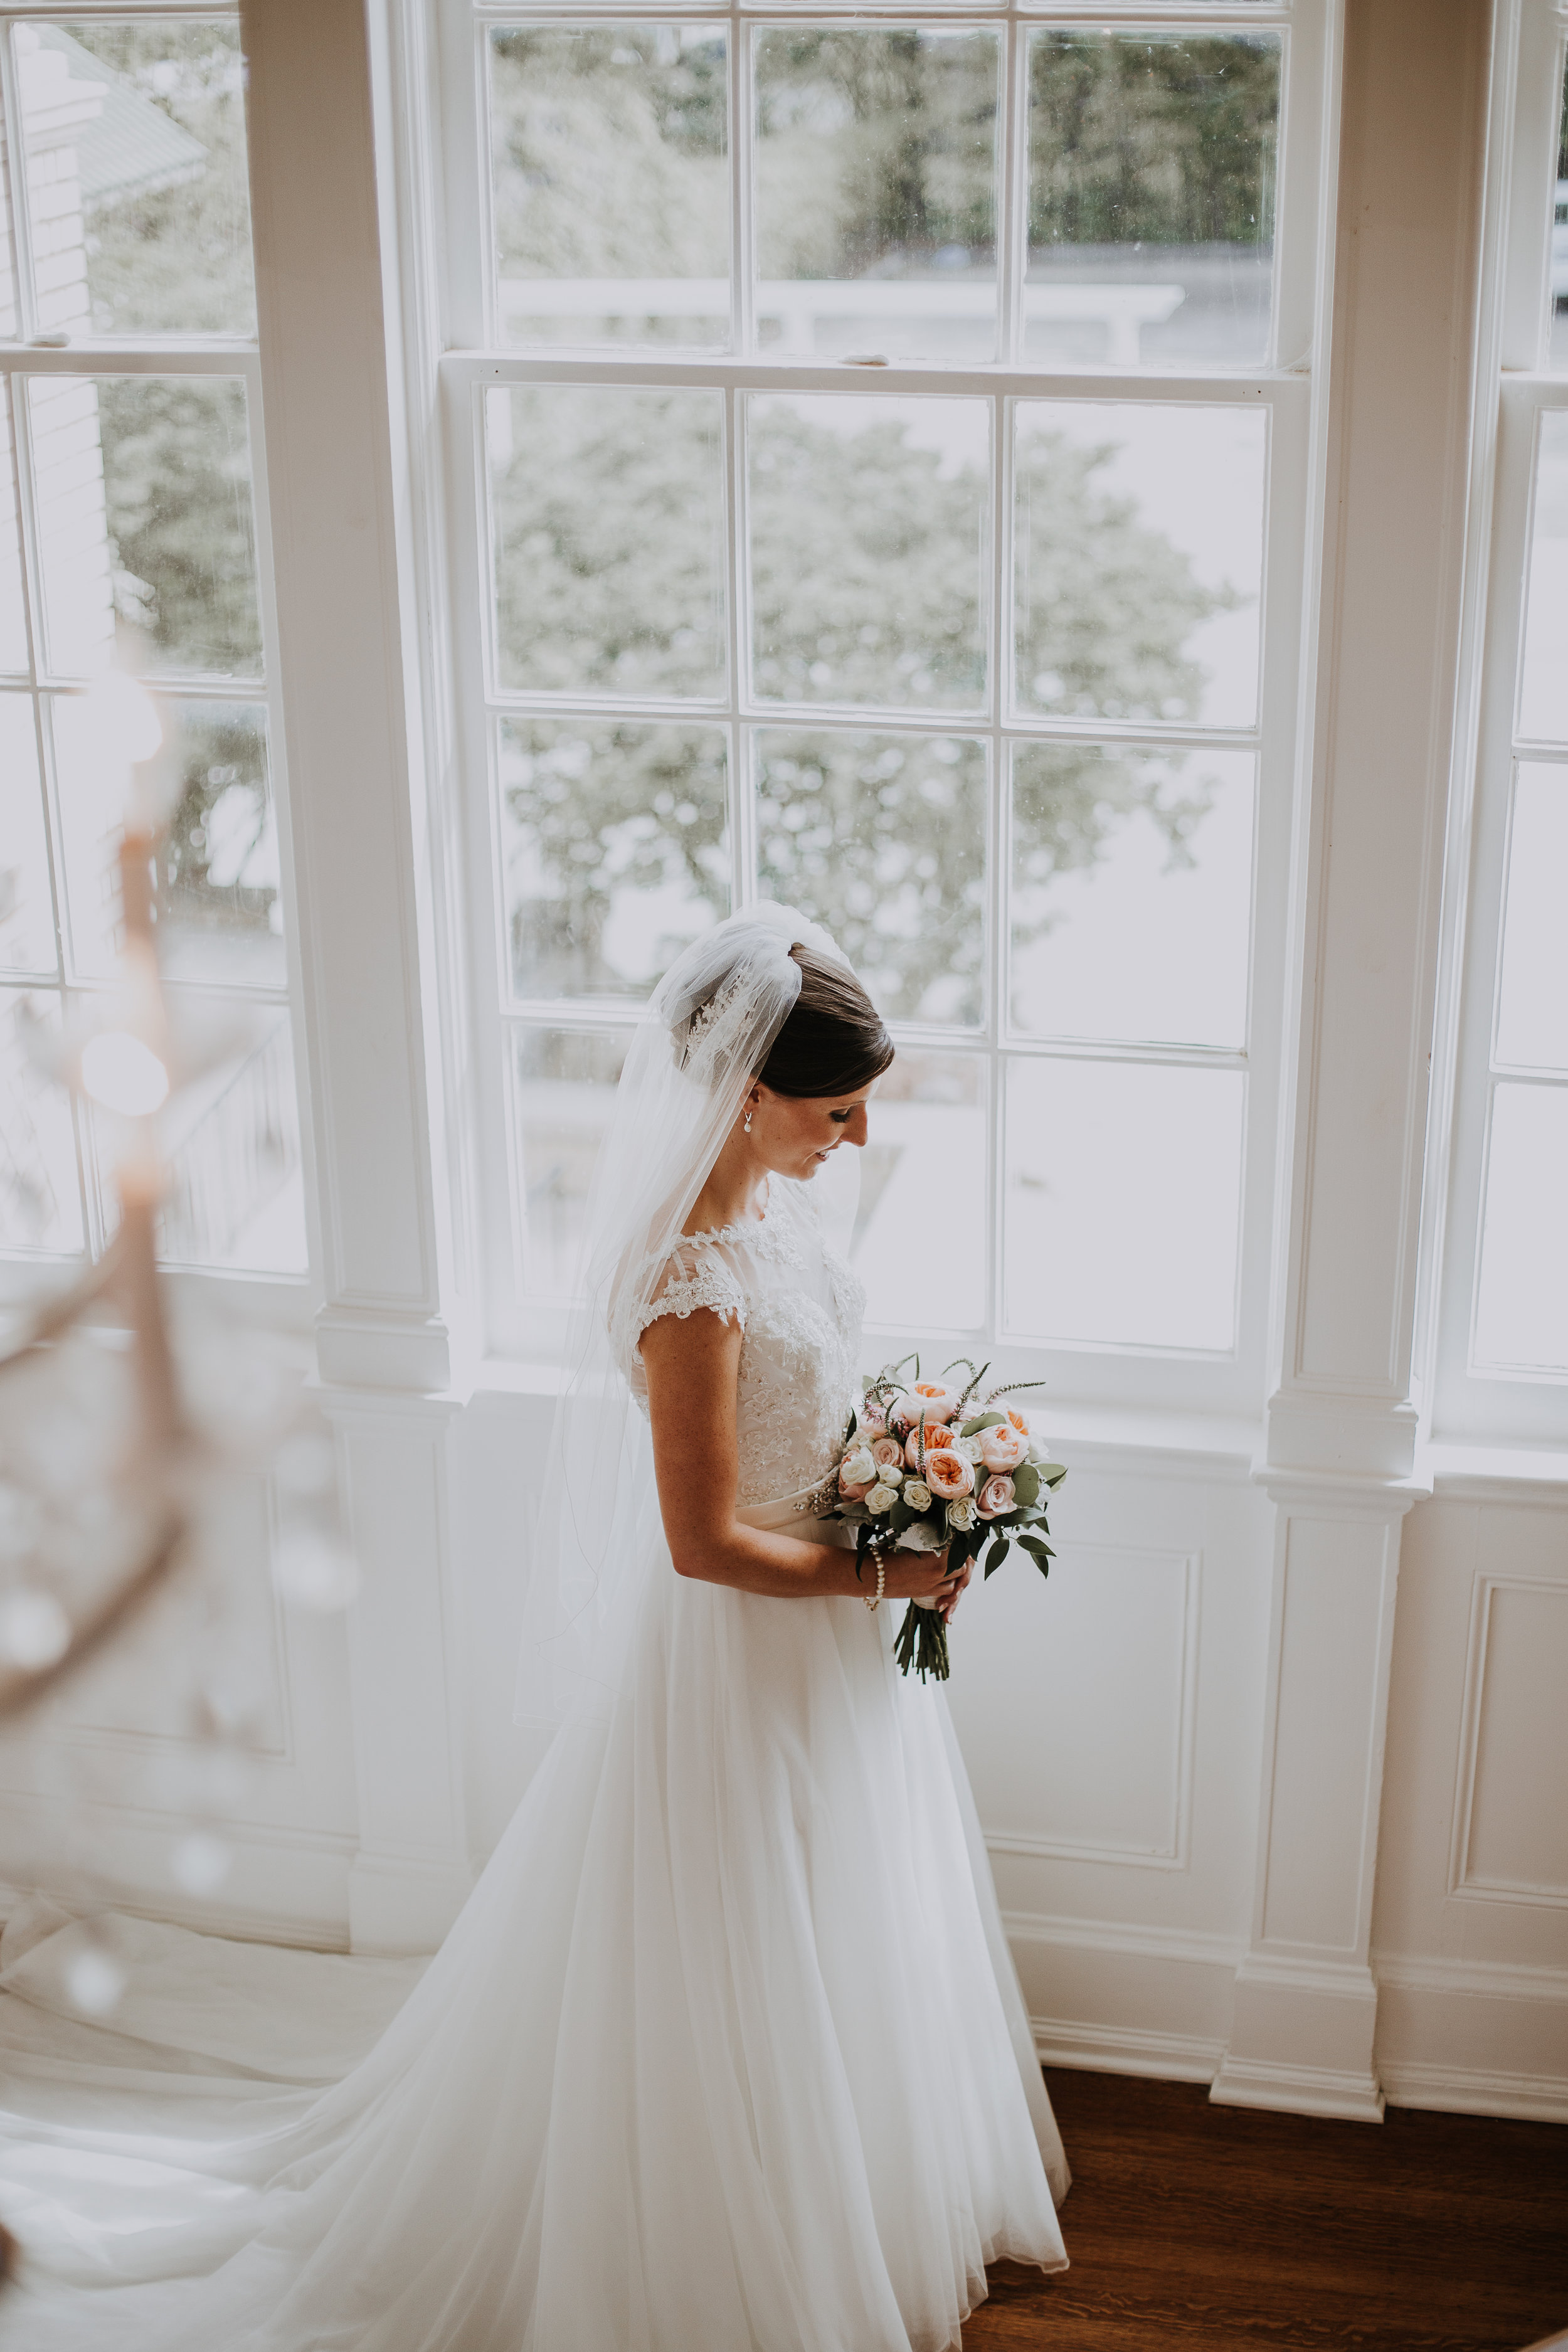 Best-venues-for-bridals-charlotte-nc